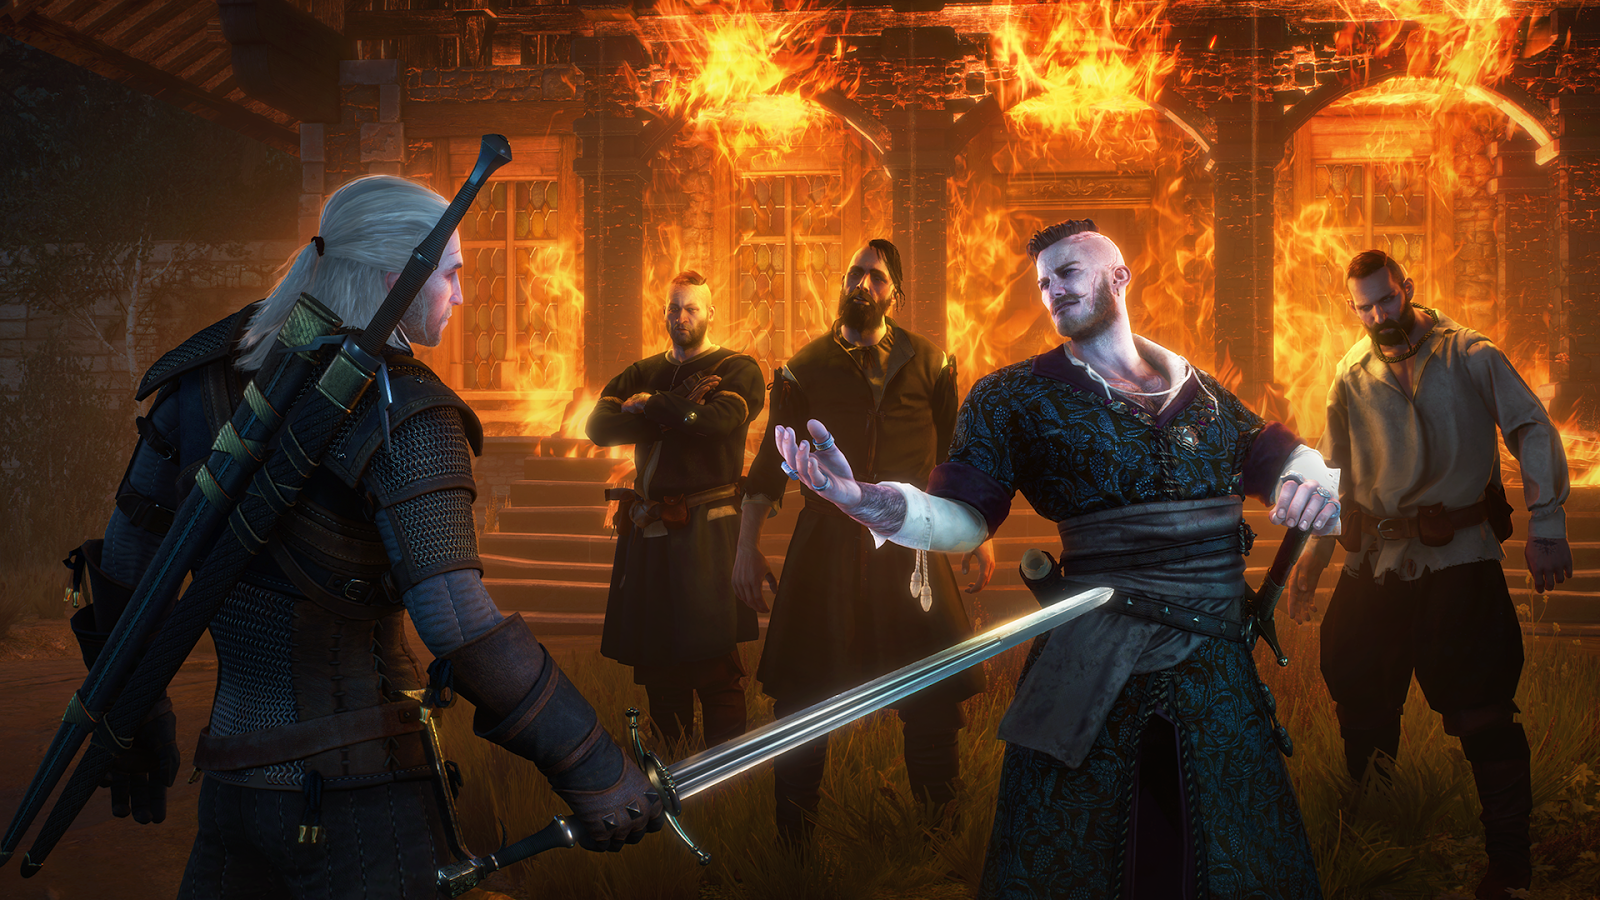 An encounter with Olgierd early on can play out in two strikingly different ways Heads roll but whose changes based on the decisions you make